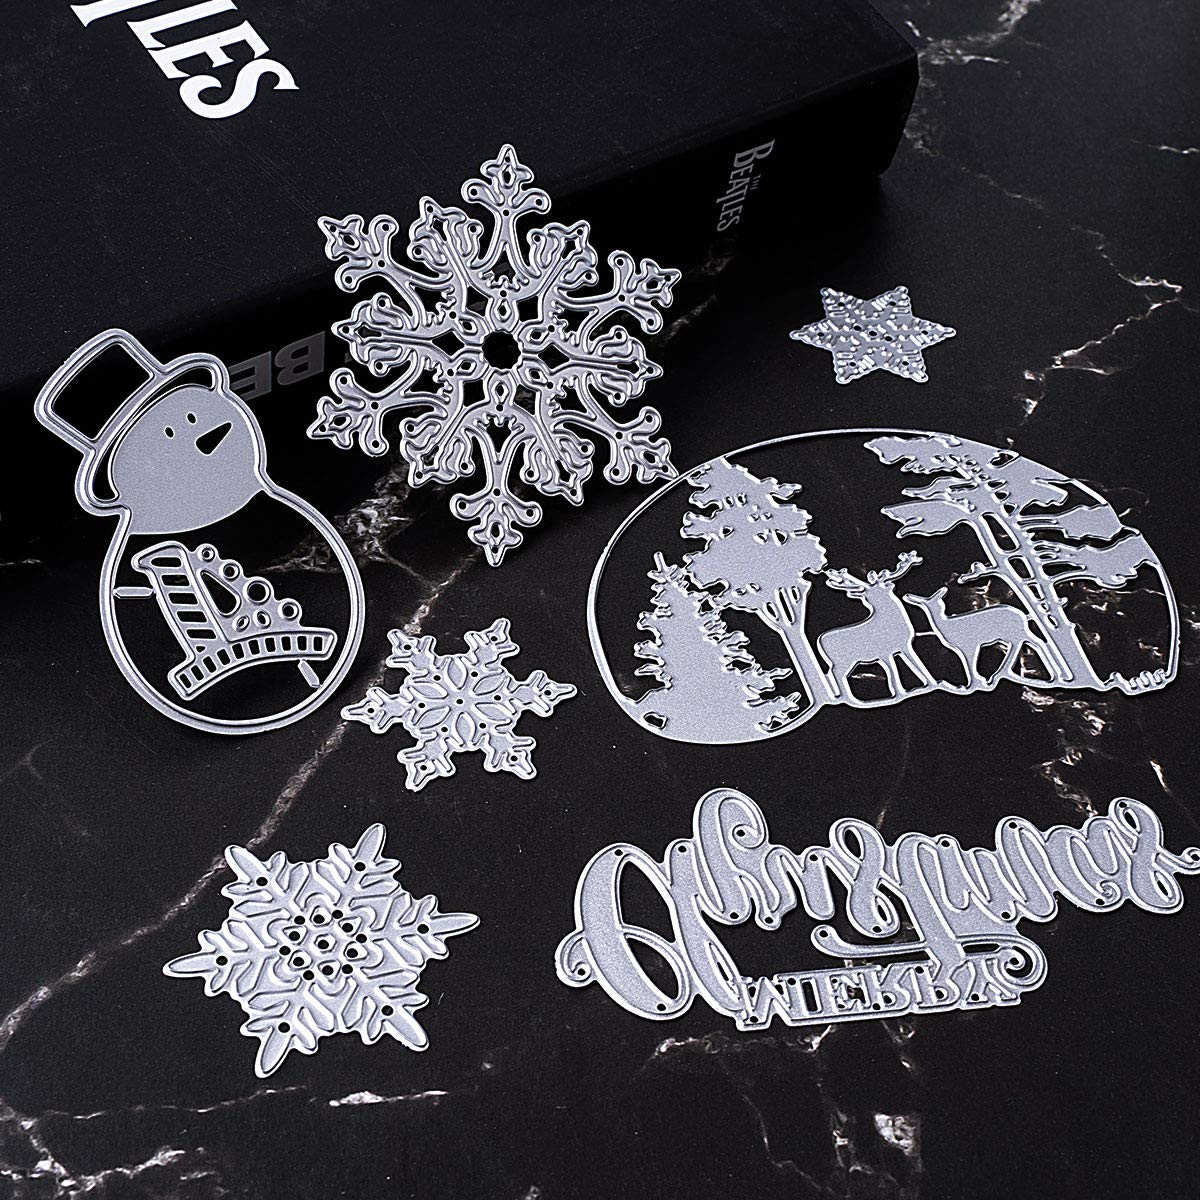 Merry Christmas Cutting Dies Set Xmas Snowman Deer Snowflake Tree Dies Cuts Metal Stencil Template for DIY Scrapbook Album Paper Card Making Craft Decoration